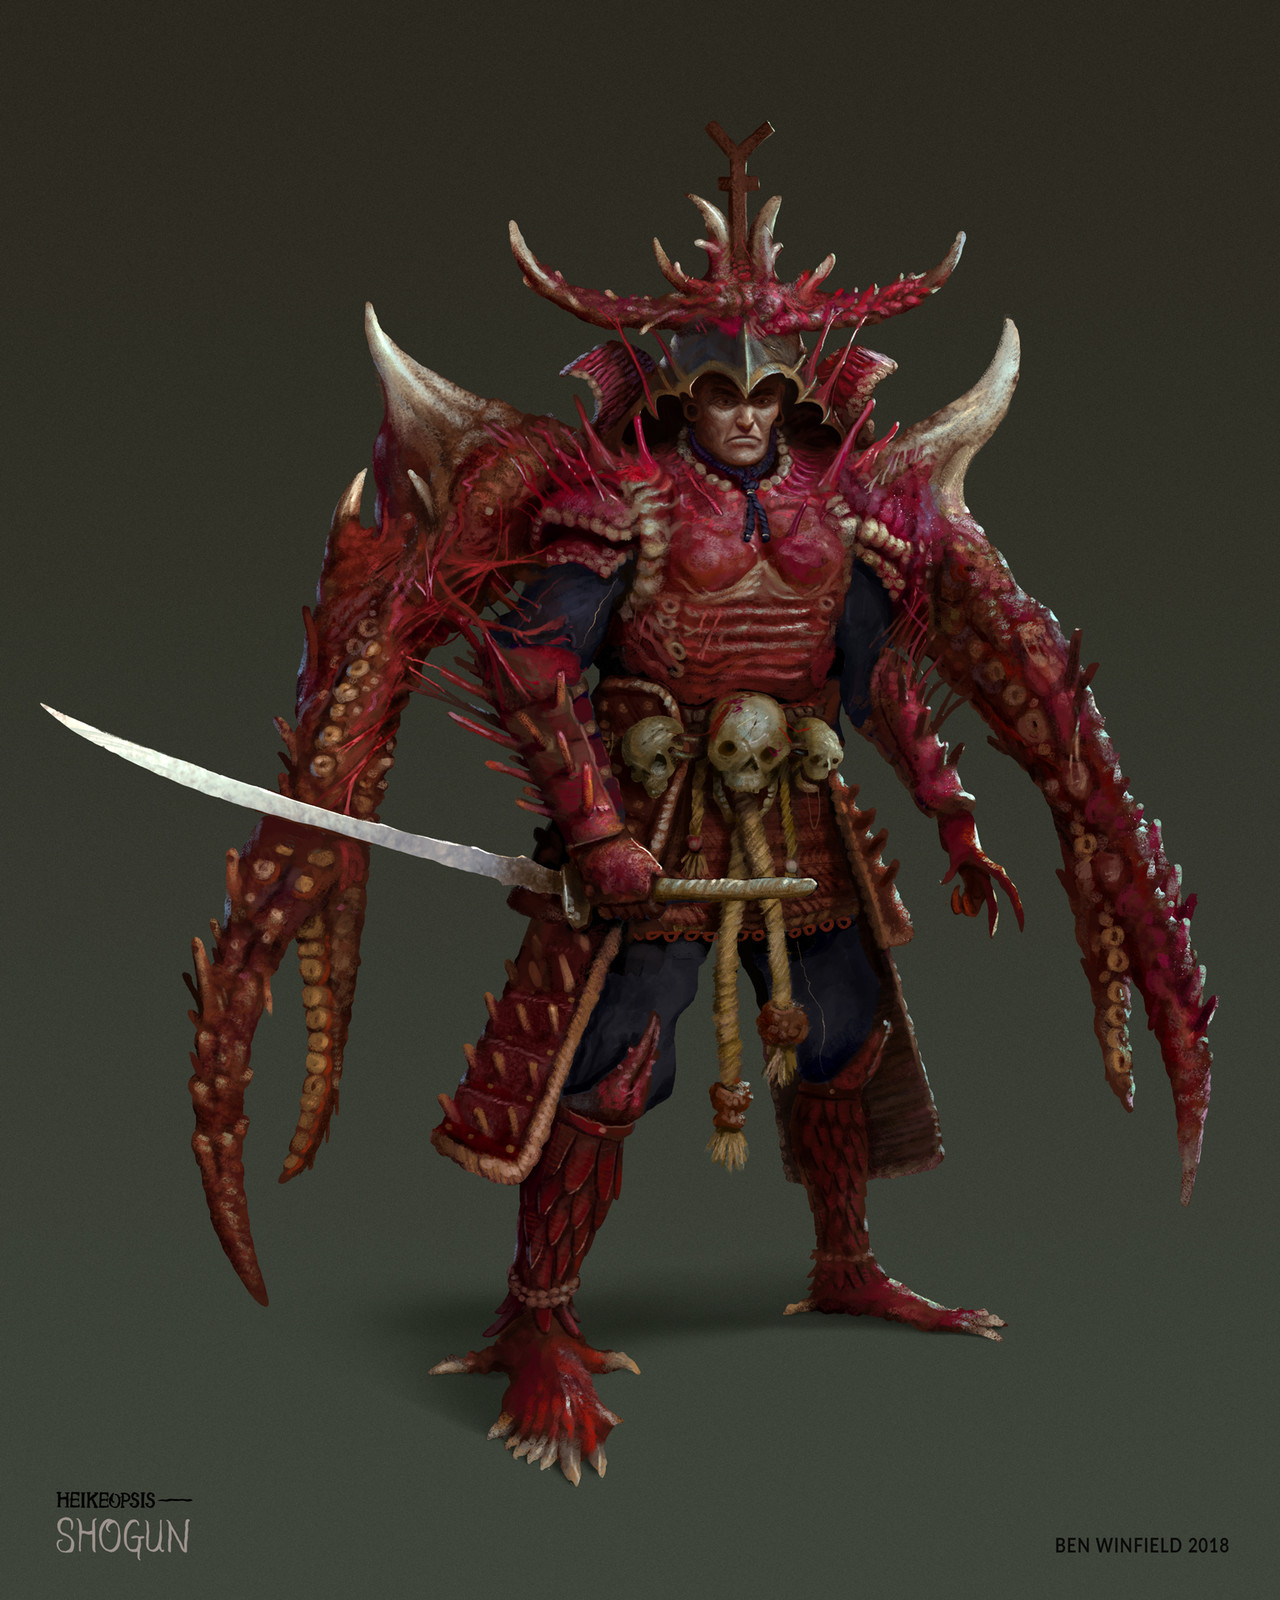 "Have received power from the Emperor, the Shogun went on a merciless hunt and destruction of the ""meat crabs"". The carcasses of the fallen enemy were dismembered and appropriated as armour for the Shogun's army."